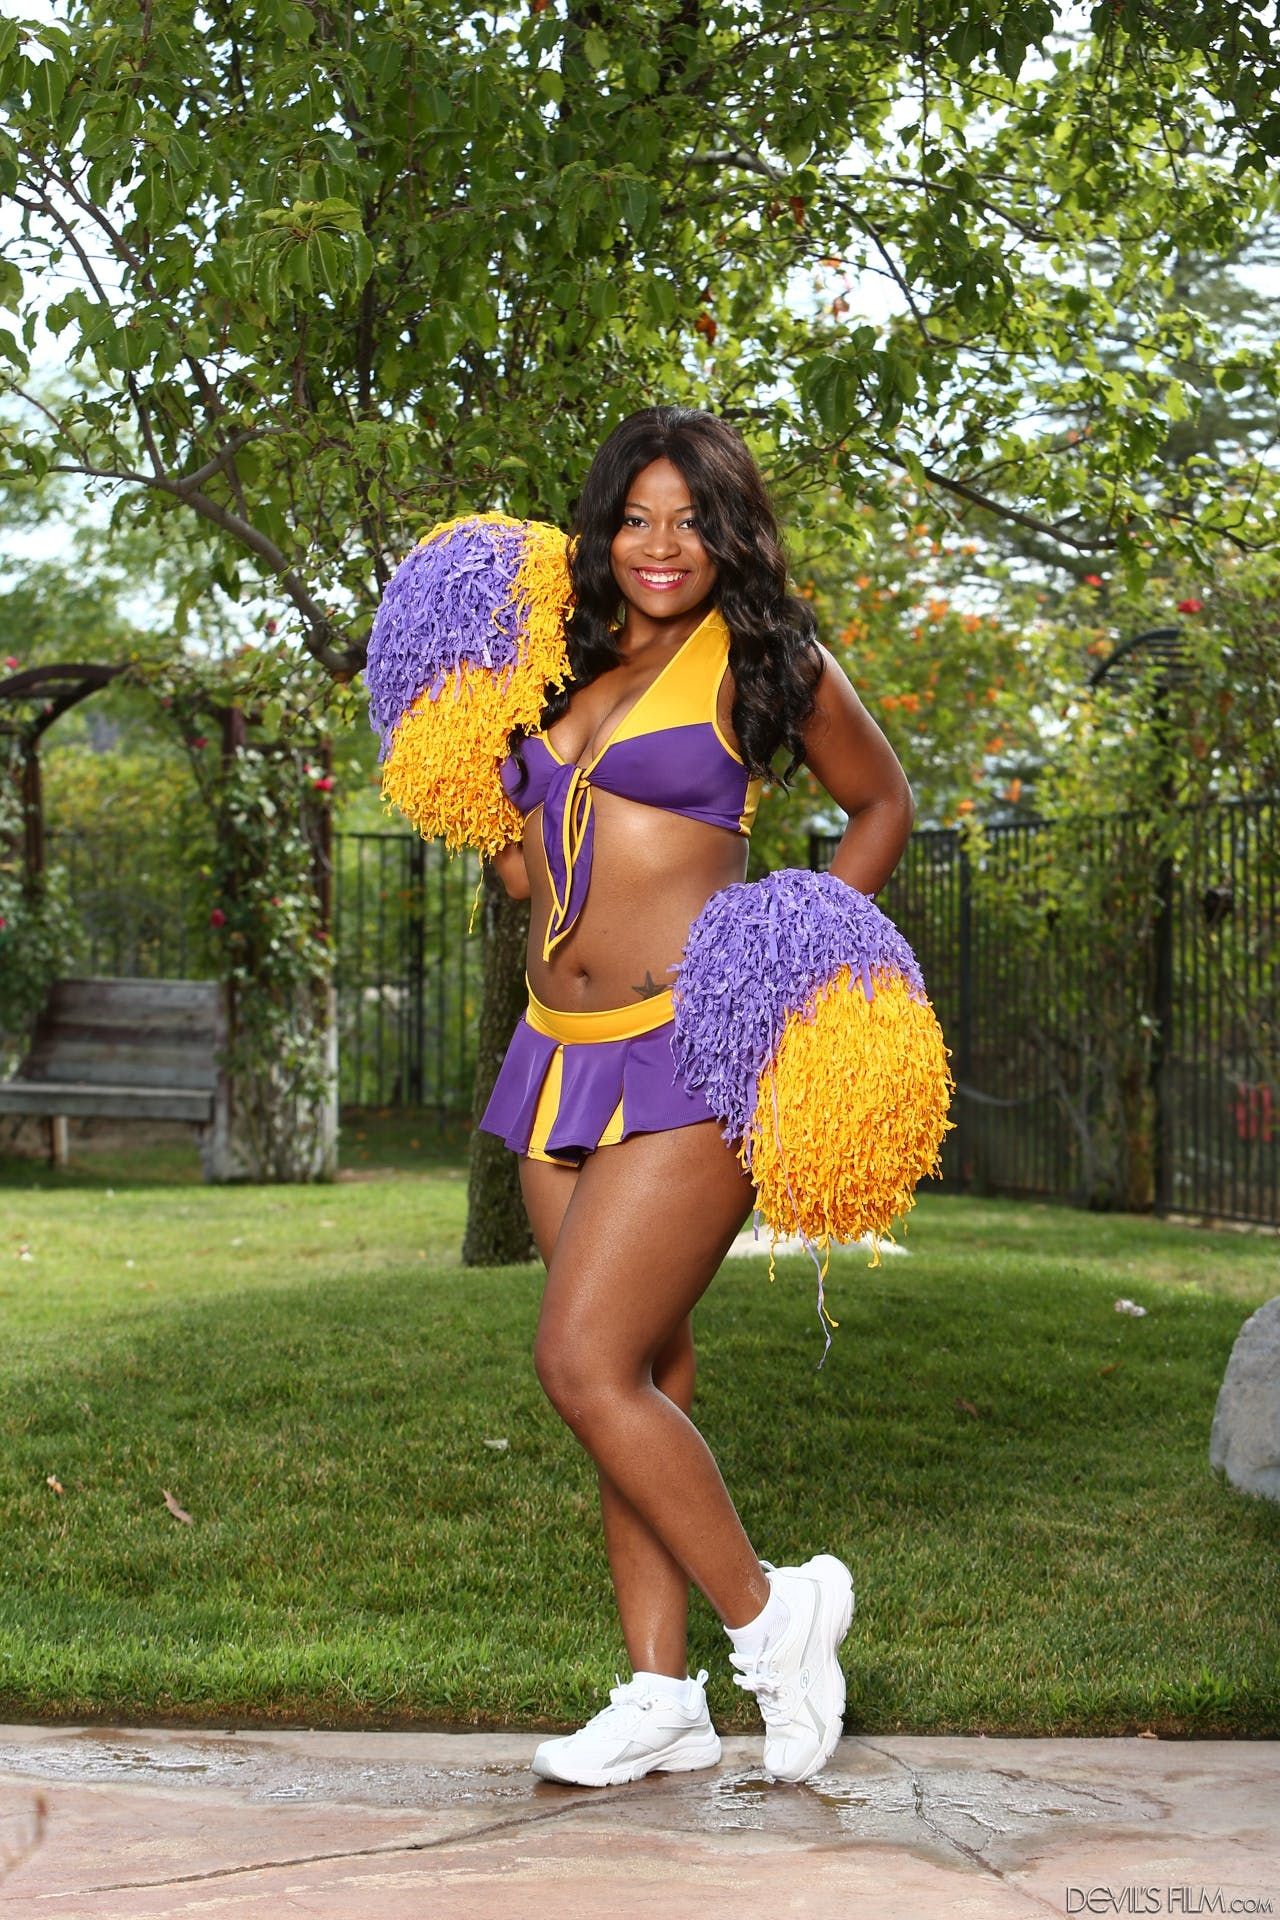 Monique Symone poses outside in her cheerleader uniform.